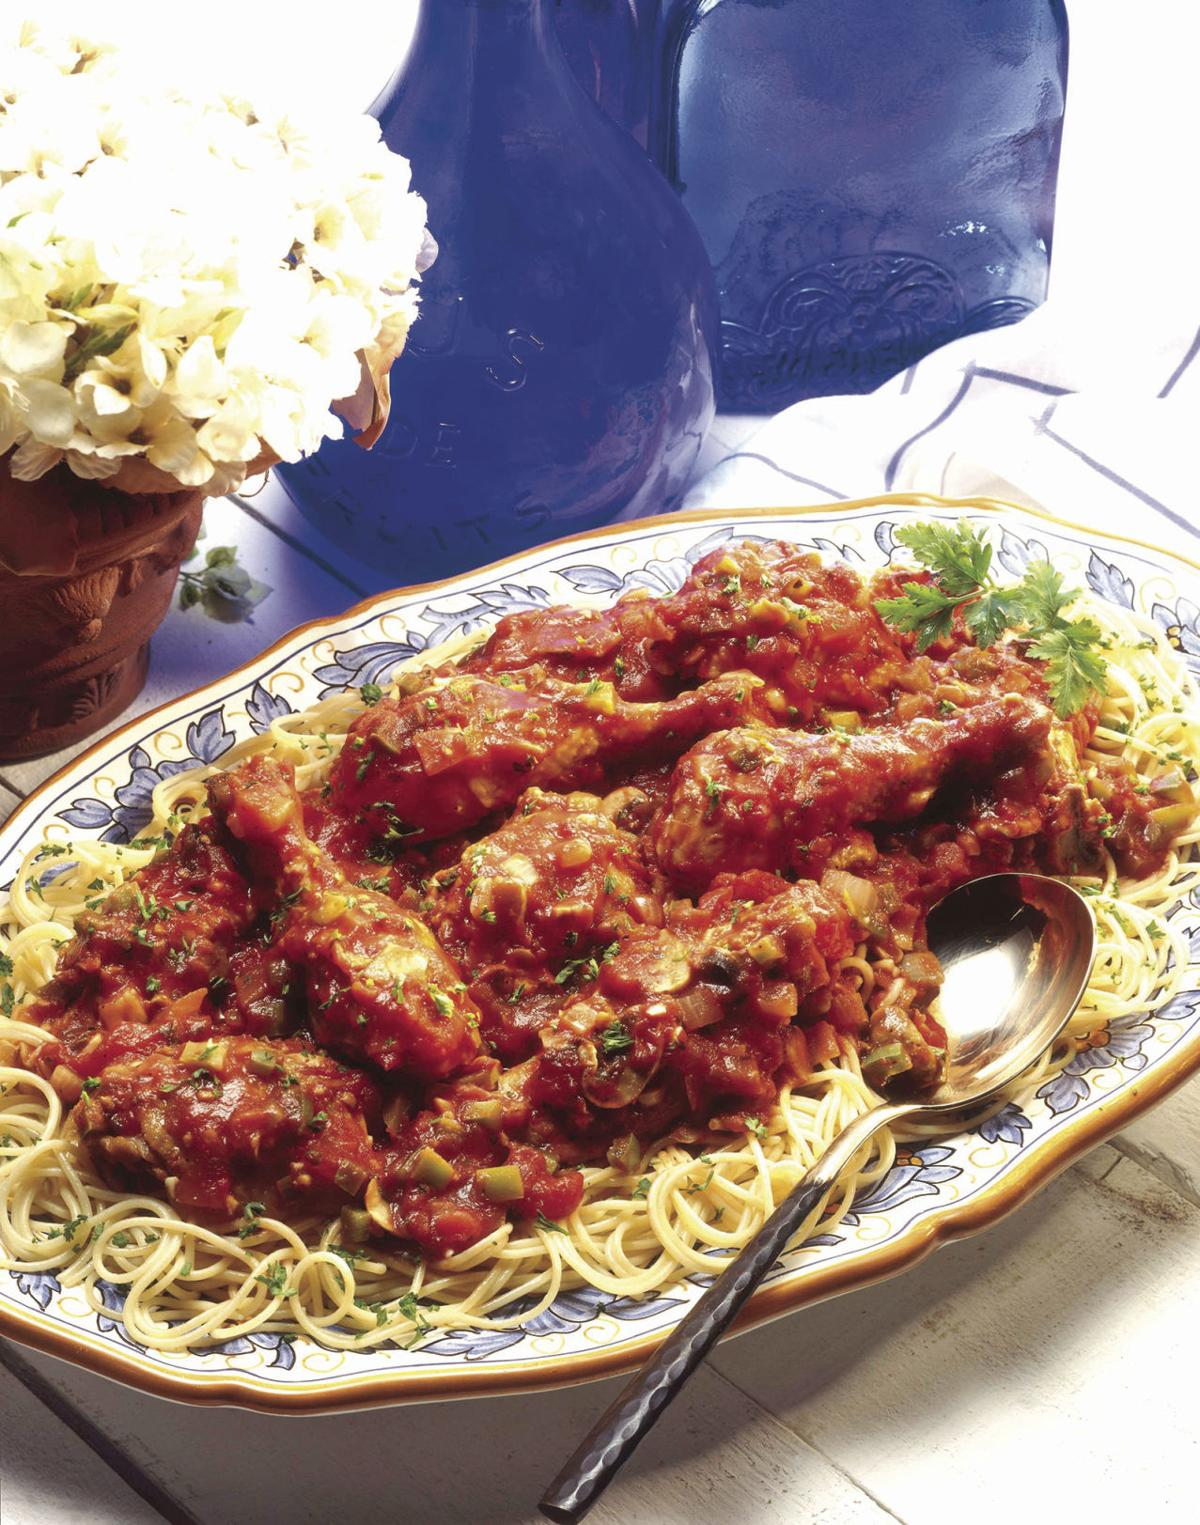 07JUL18-ChickenCacciatore.jpg